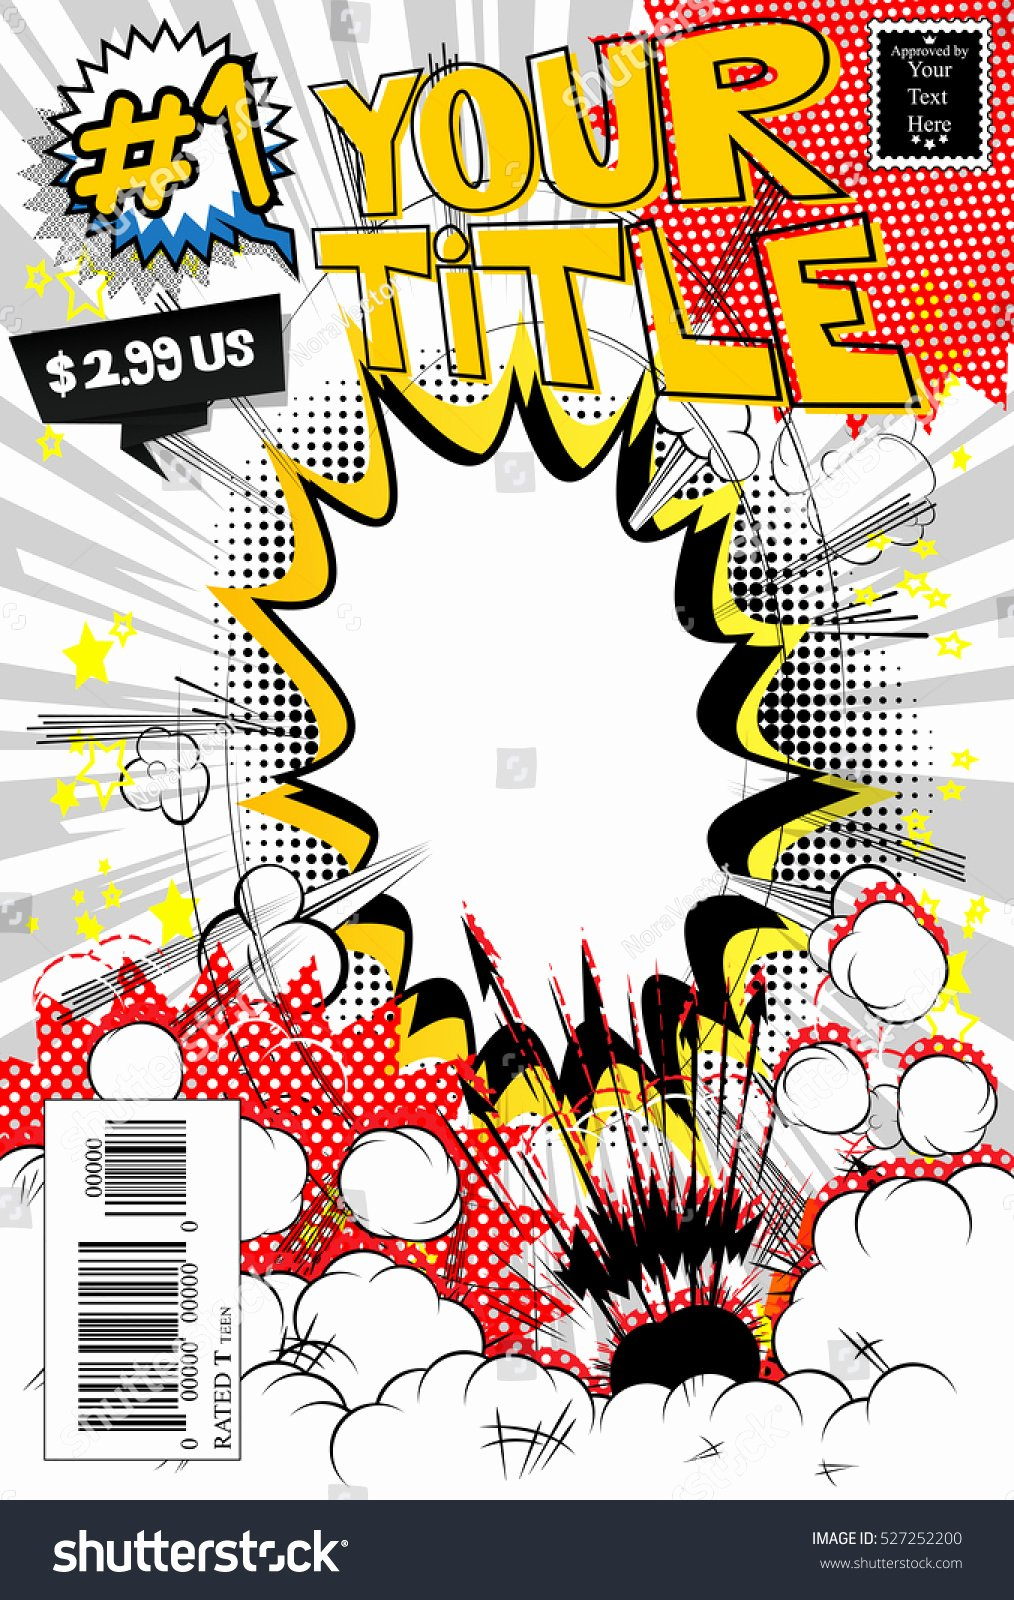 Comic Book Cover Template Awesome Editable Ic Book Cover Stock Vector Shutterstock